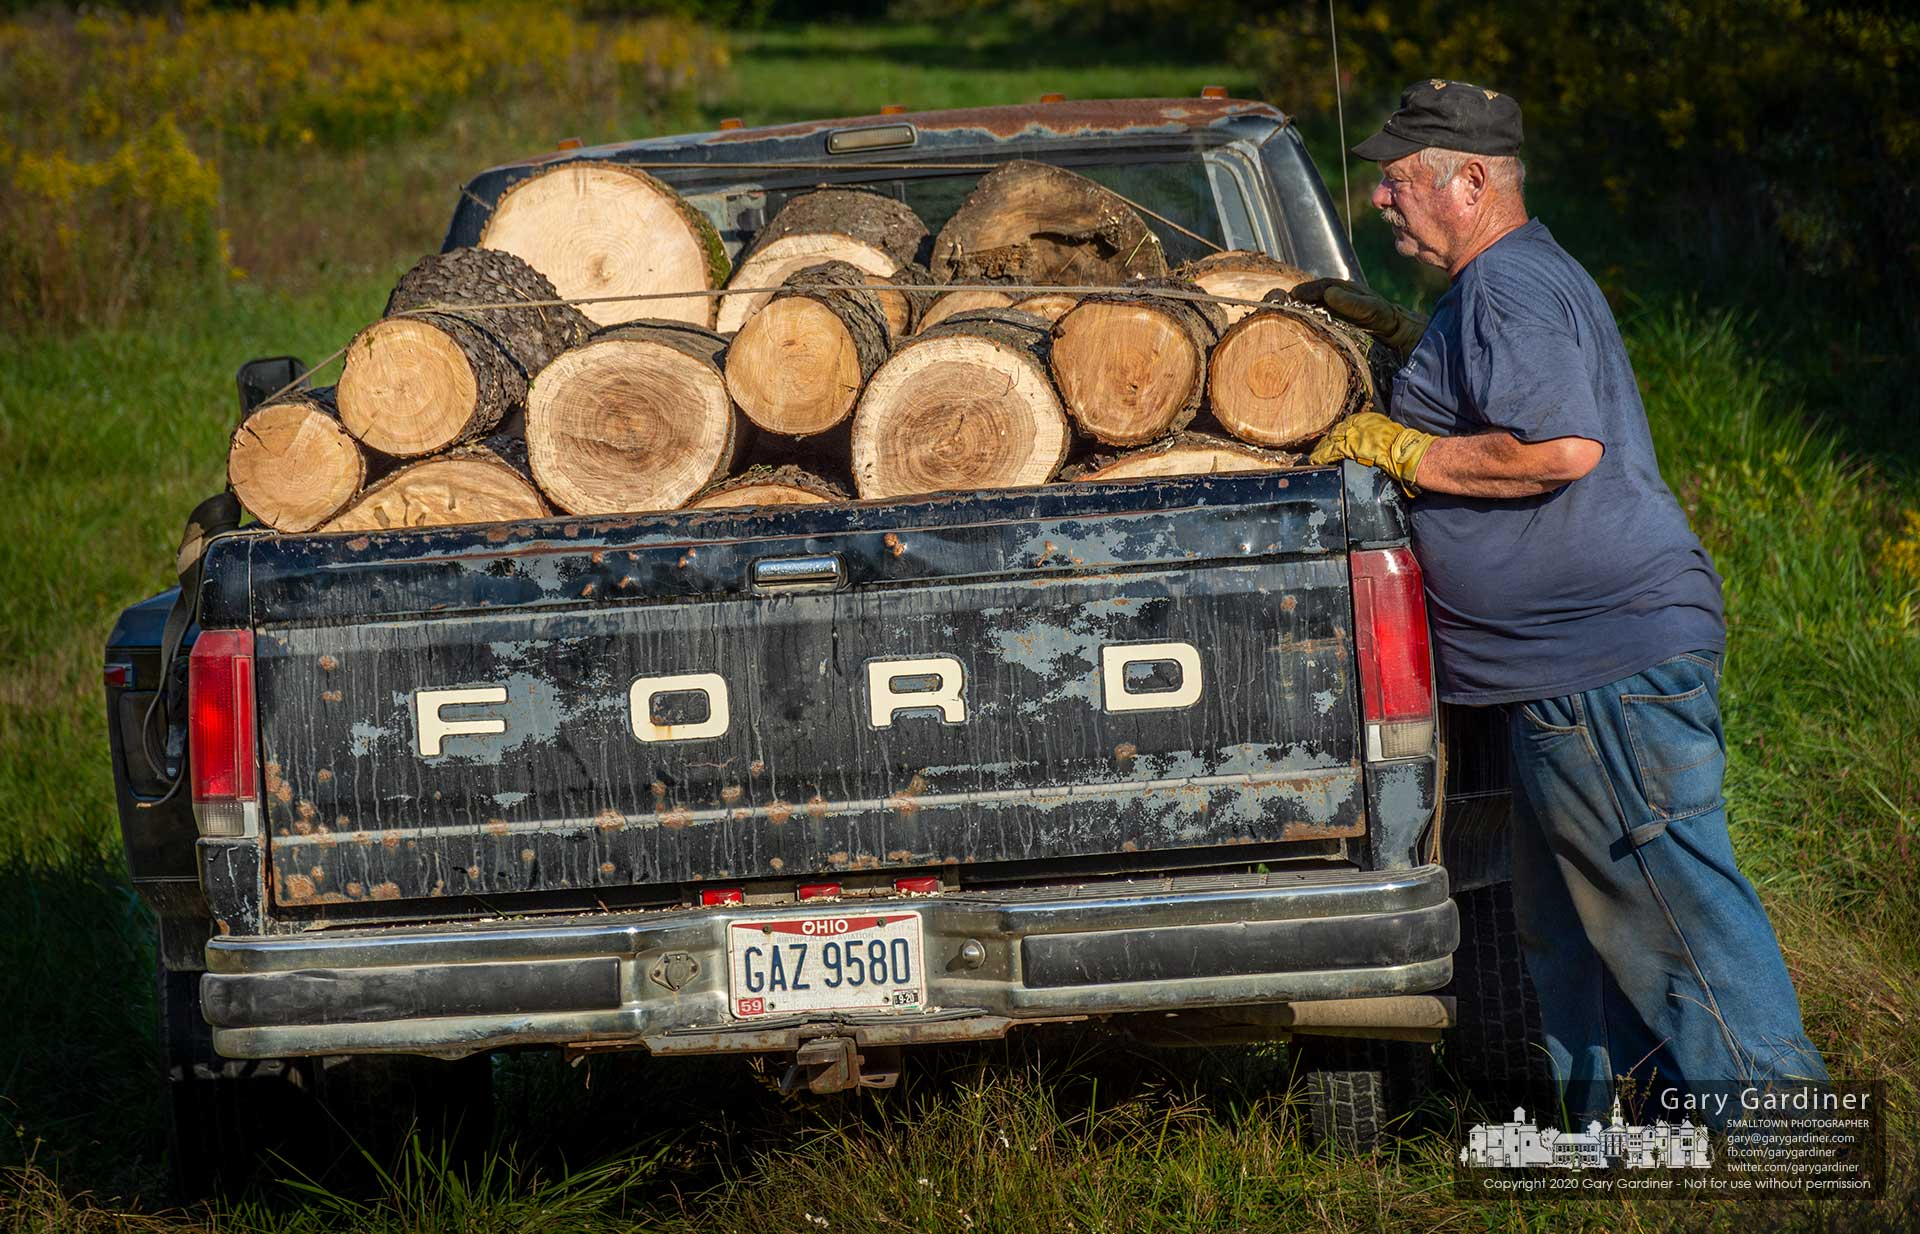 Kevin Scott checks a load of seasoned firewood loaded onto a pickup truck. My Final Photo for Sept. 25, 2020.